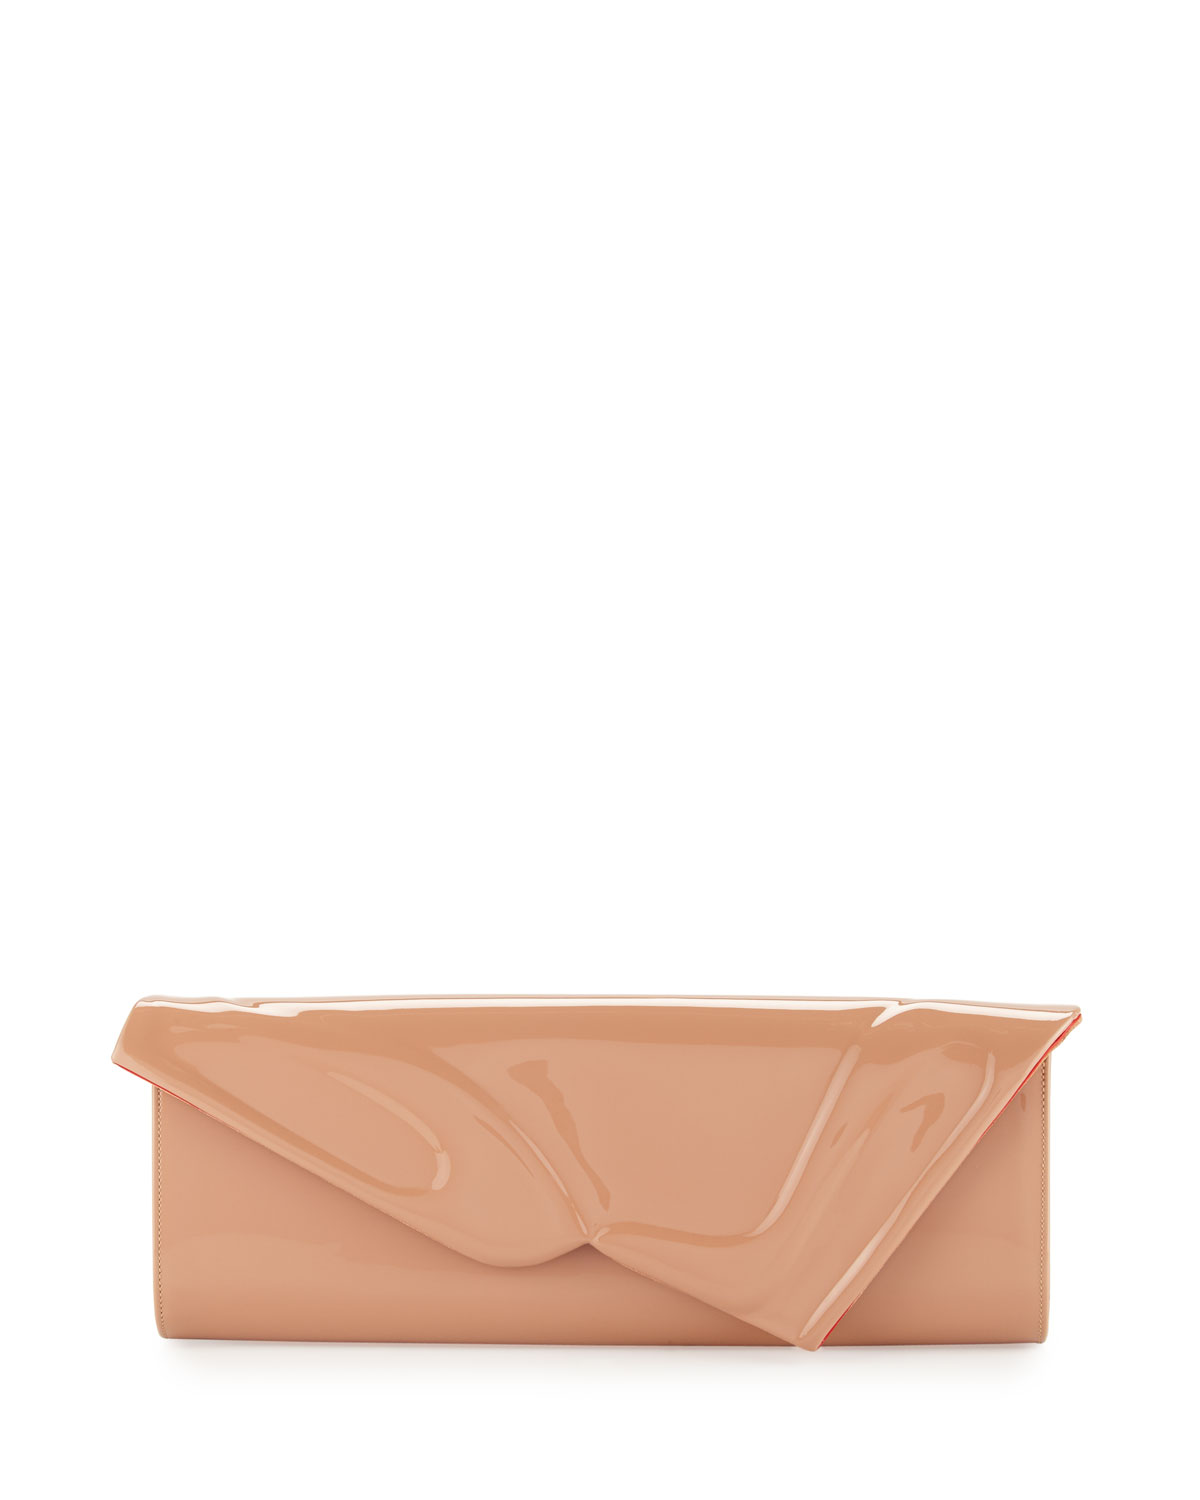 Christian Louboutin So Kate Patent East-West Clutch Bag, Nude